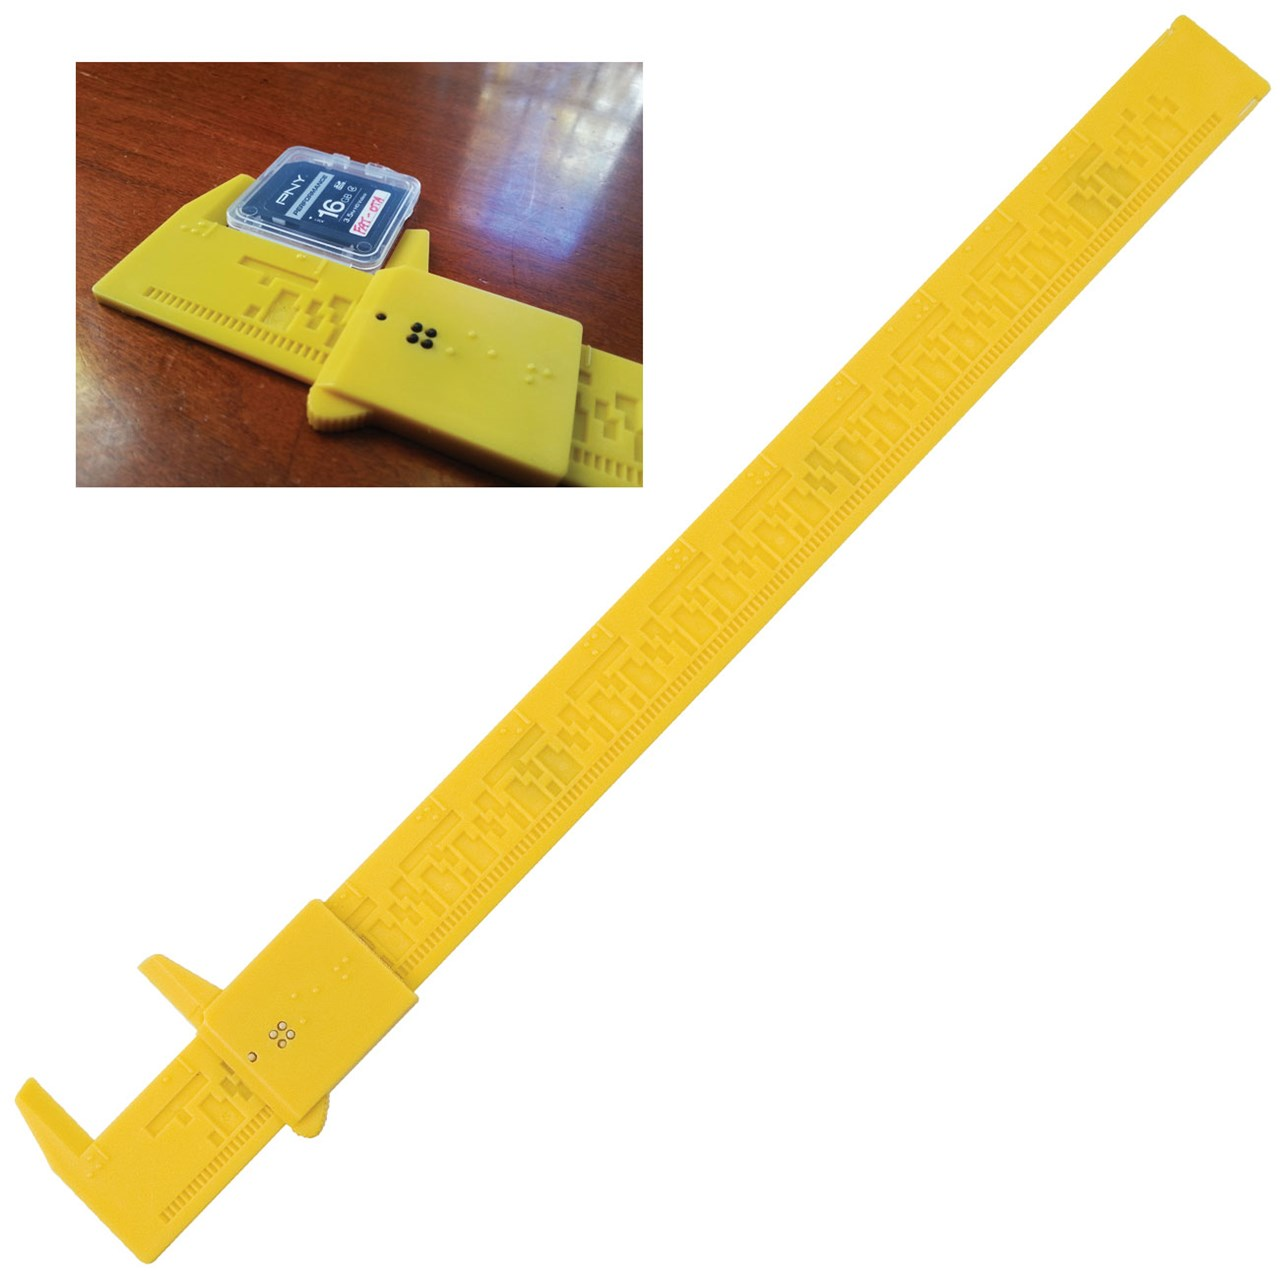 Tactile Braille Caliper | Special Needs Education Supplies ...